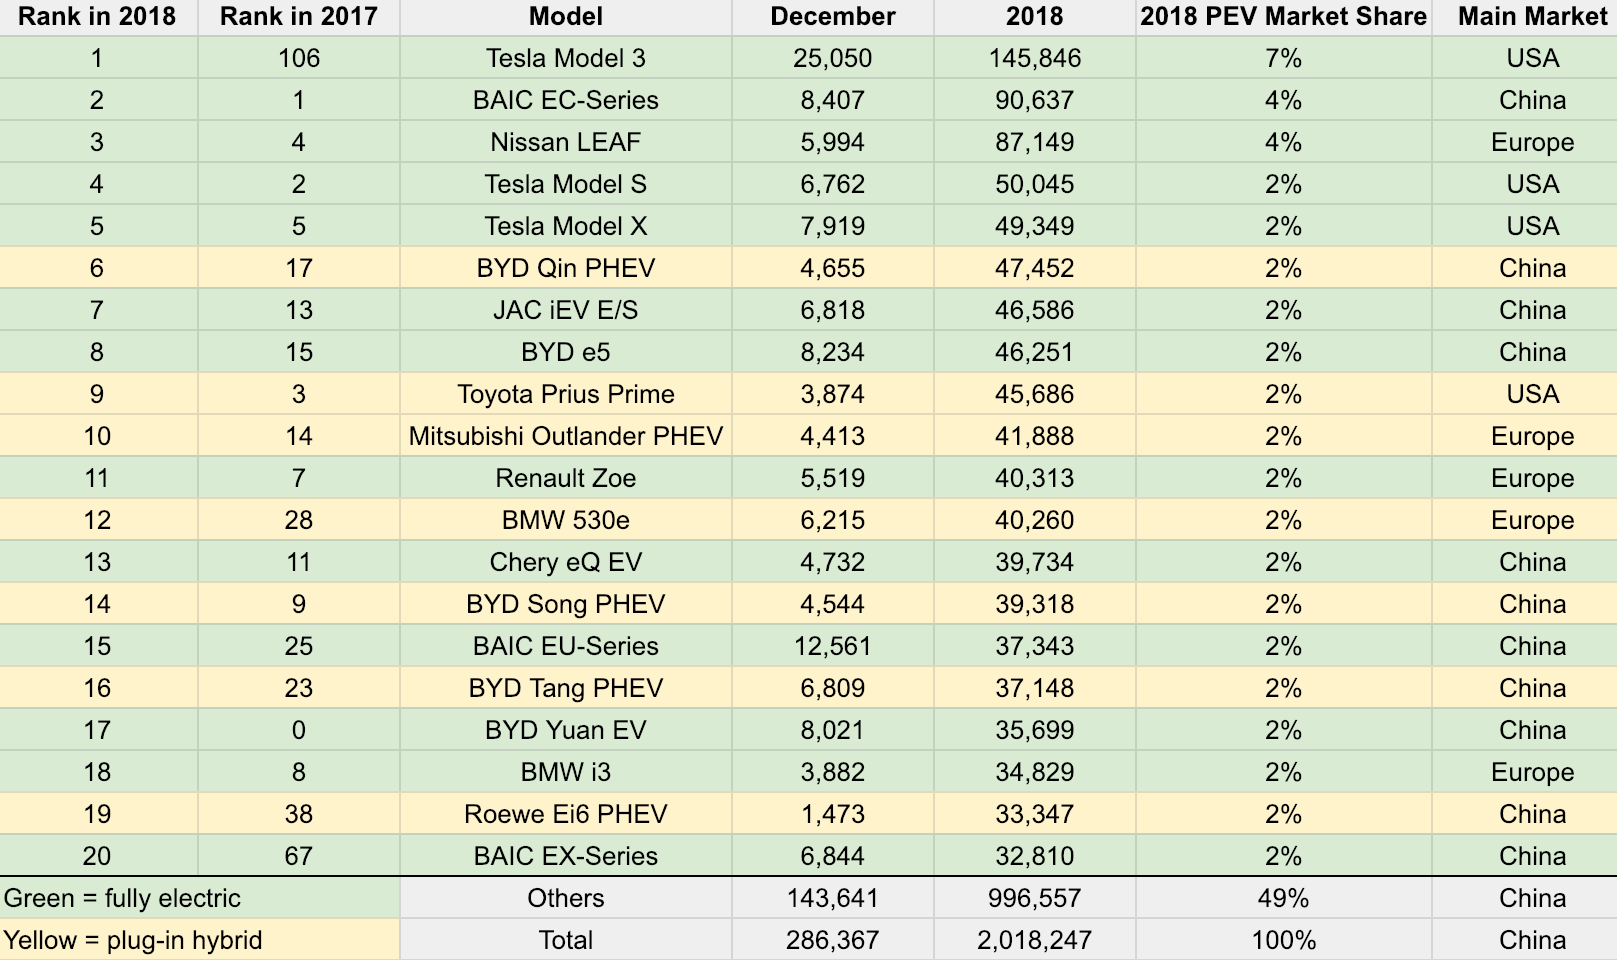 Tesla Model 3 = #1 Best Selling Electric Car in World, 7% of Global EV Market in 2018